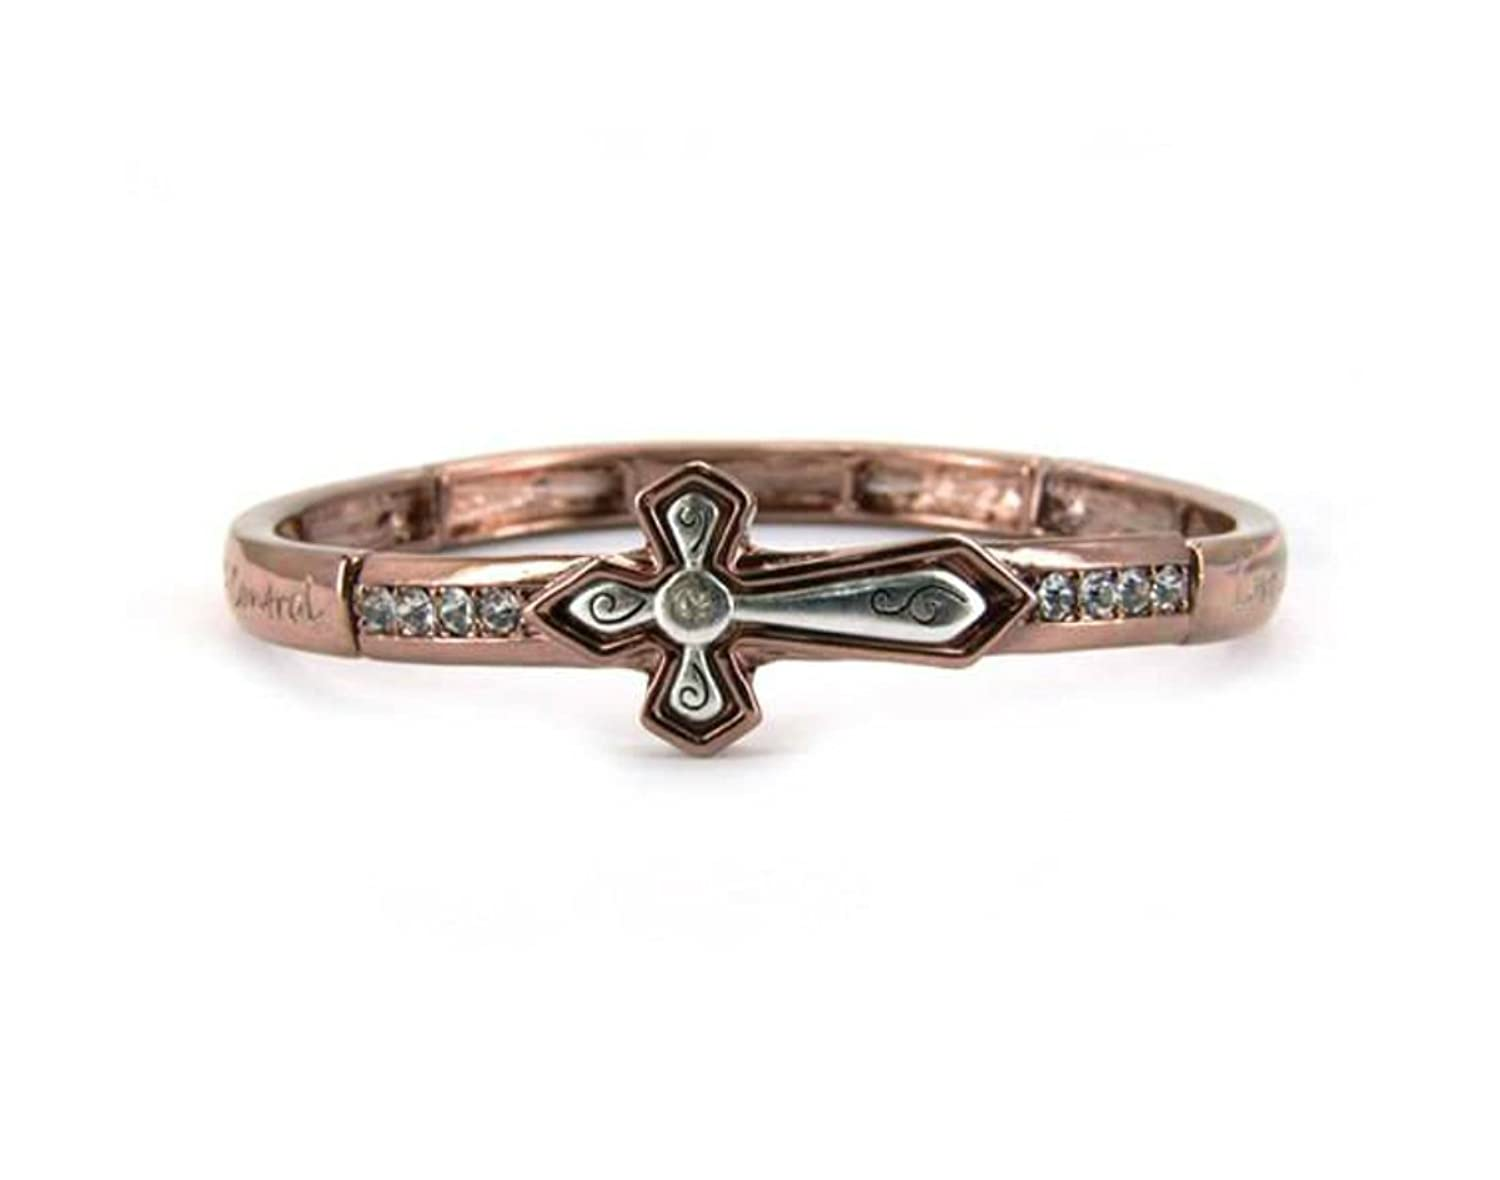 """The Fruit of the Spirit"" Religious Inspirational Engraved Copper-tone Stretch Bracelet By Athena Brand"